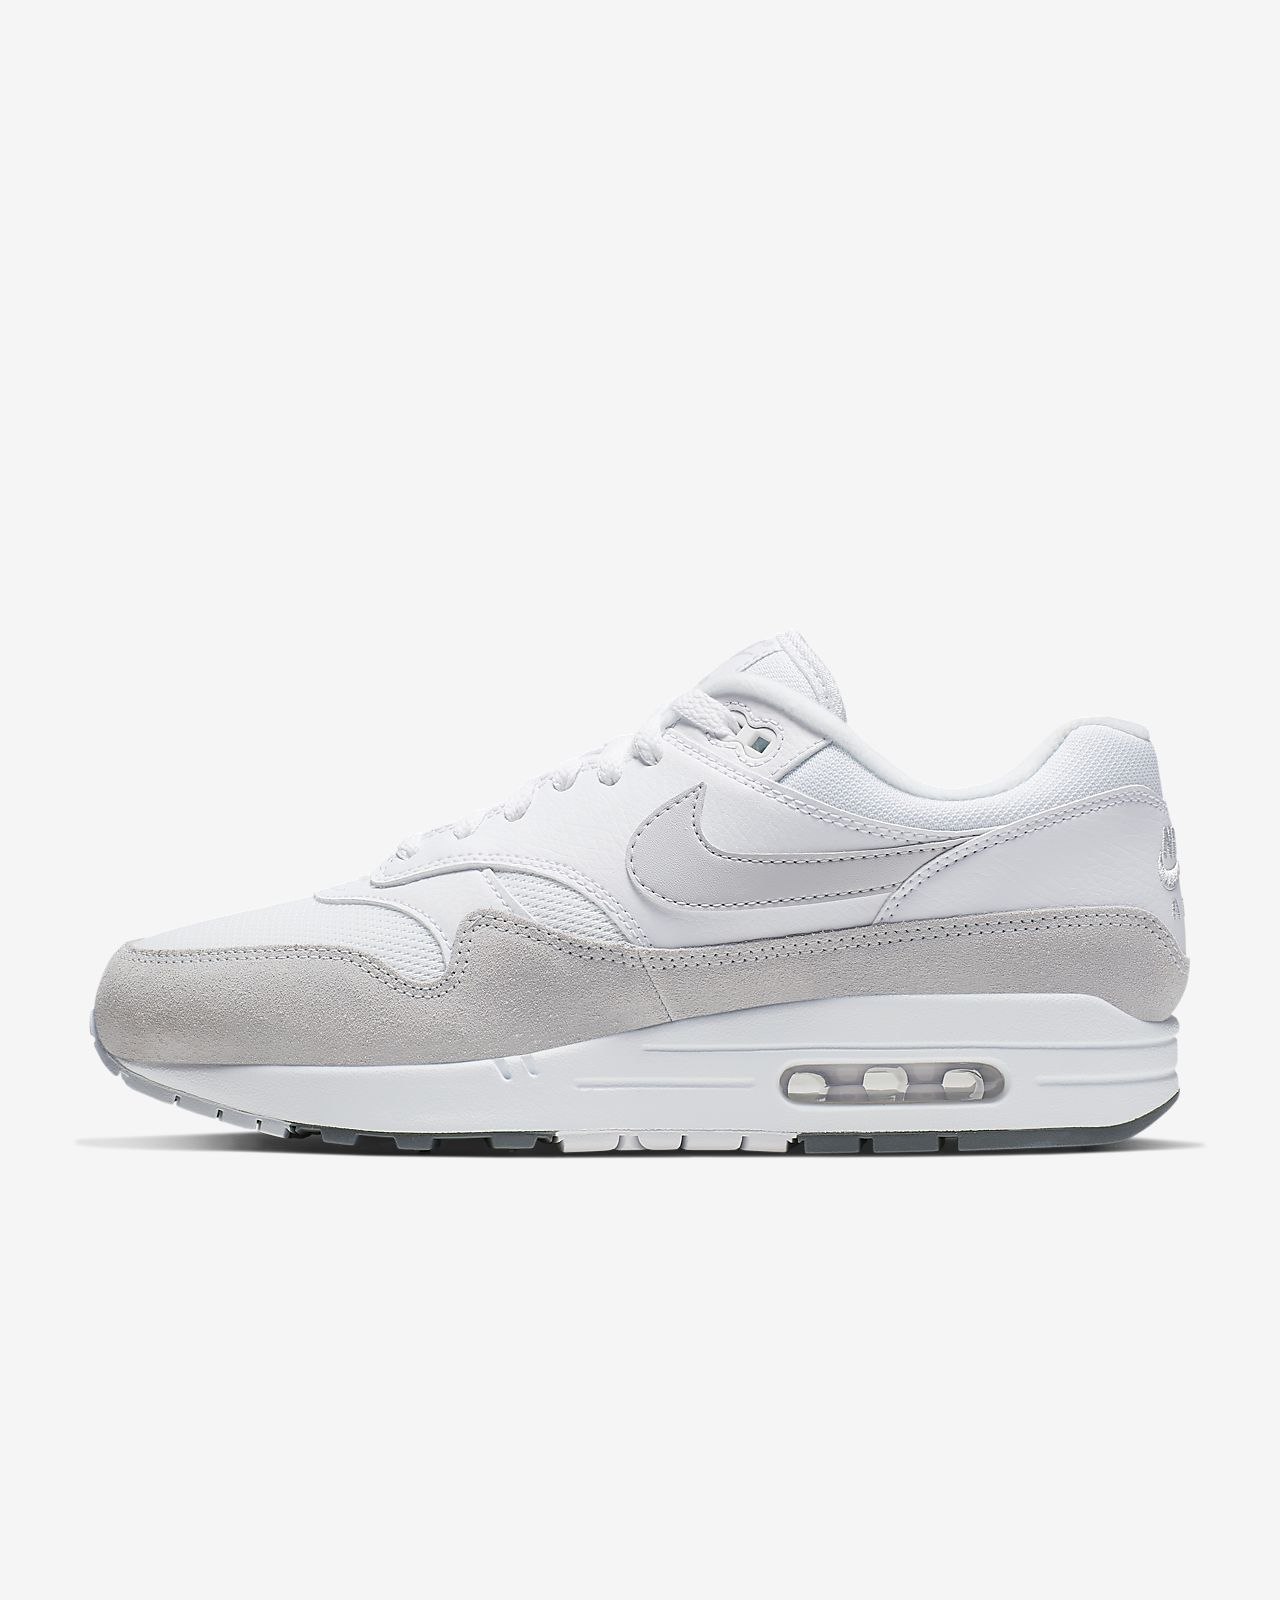 1ed5e3da5c Nike Air Max 1 Men's Shoe. Nike.com